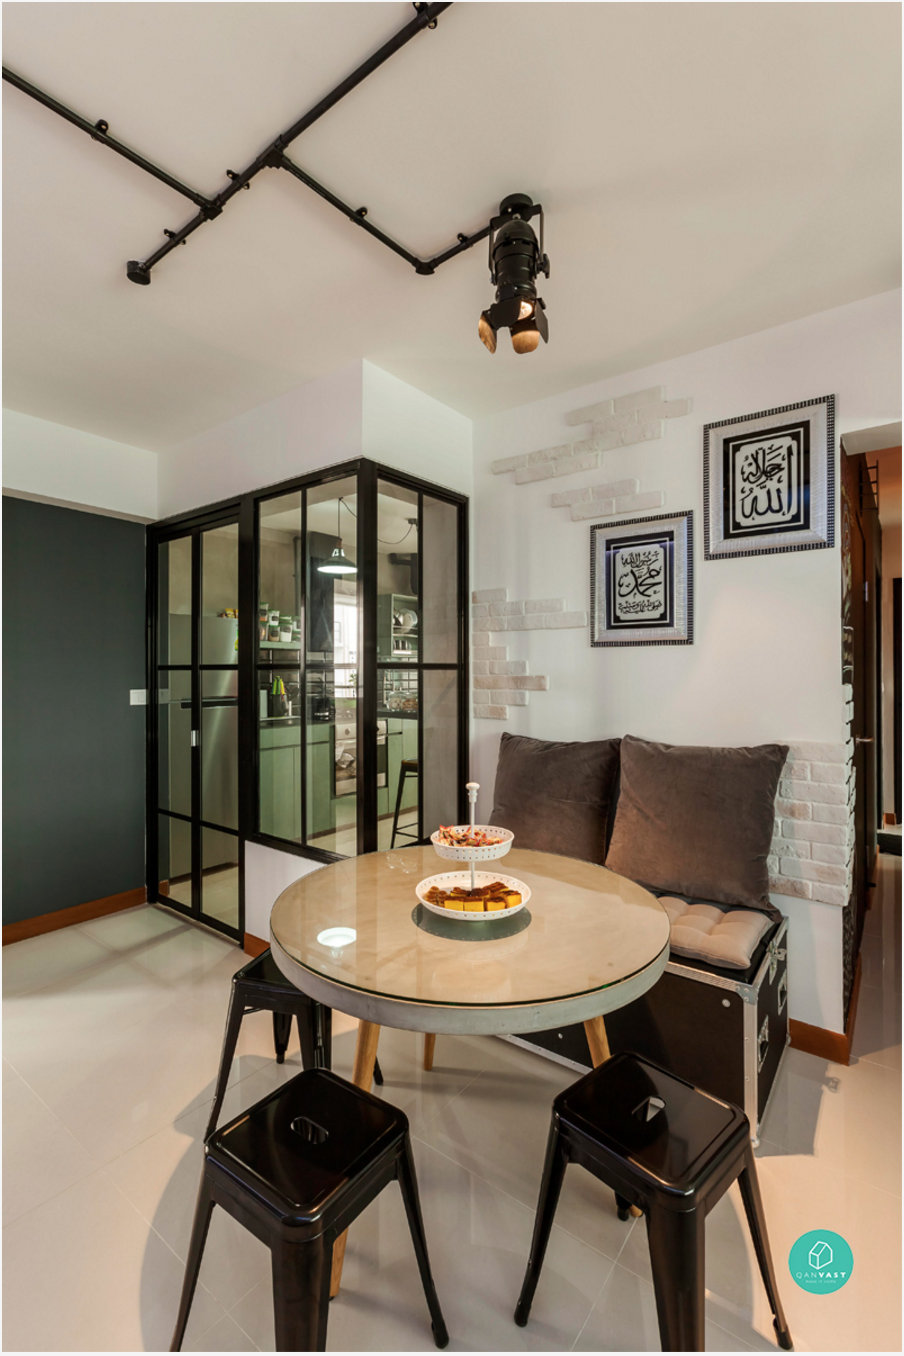 6 brilliant 4 room hdb ideas for your new home for Hdb minimalist interior design